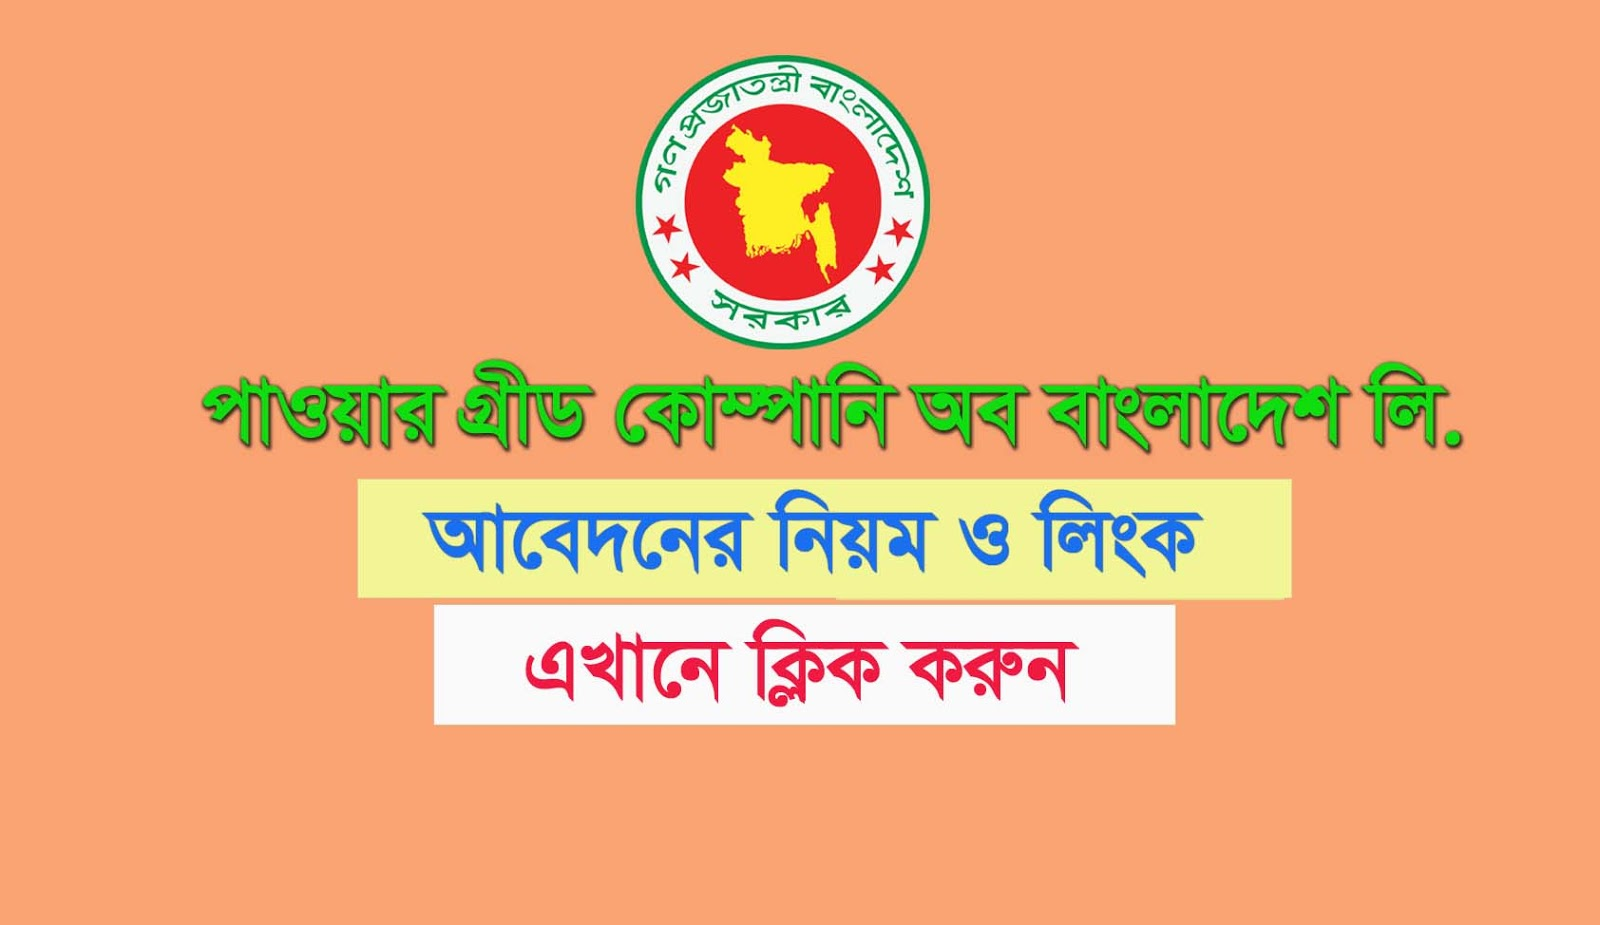 Power-Grid-Company-of-Bangladesh-Ltd-job-circular